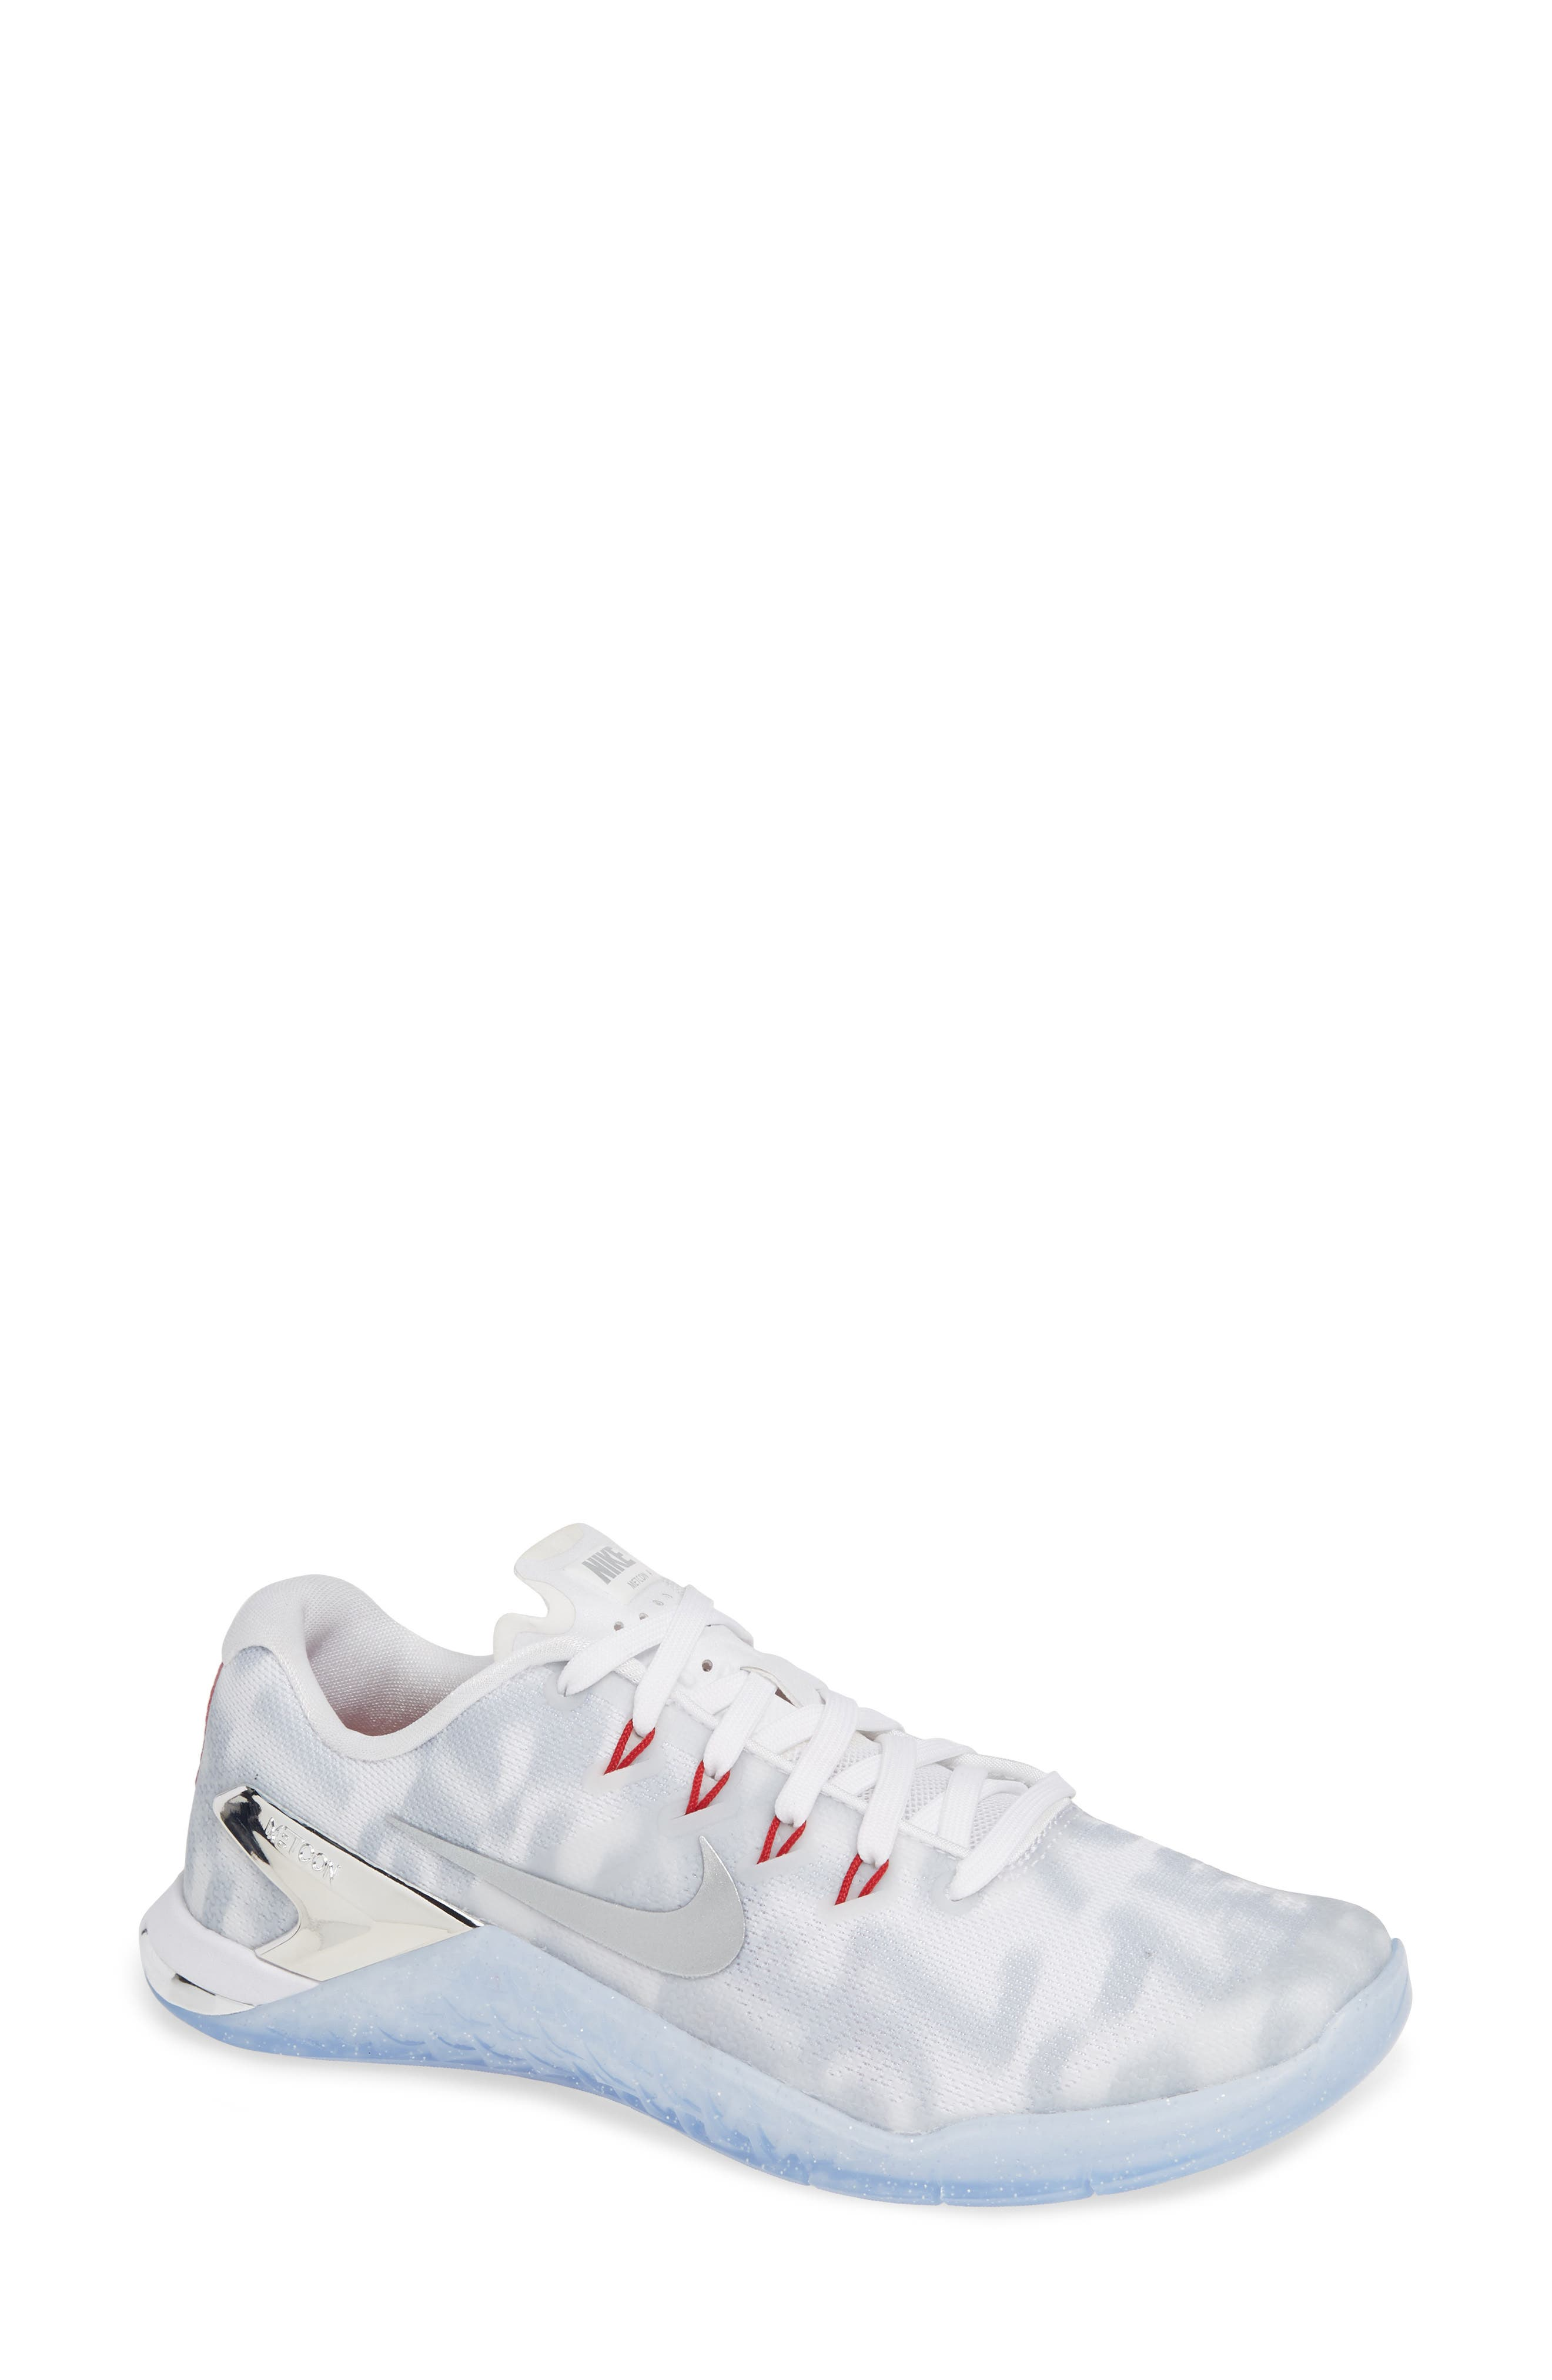 Metcon 4 Training Shoe,                             Main thumbnail 1, color,                             WHITE METALLIC SILVER/ GYM RED